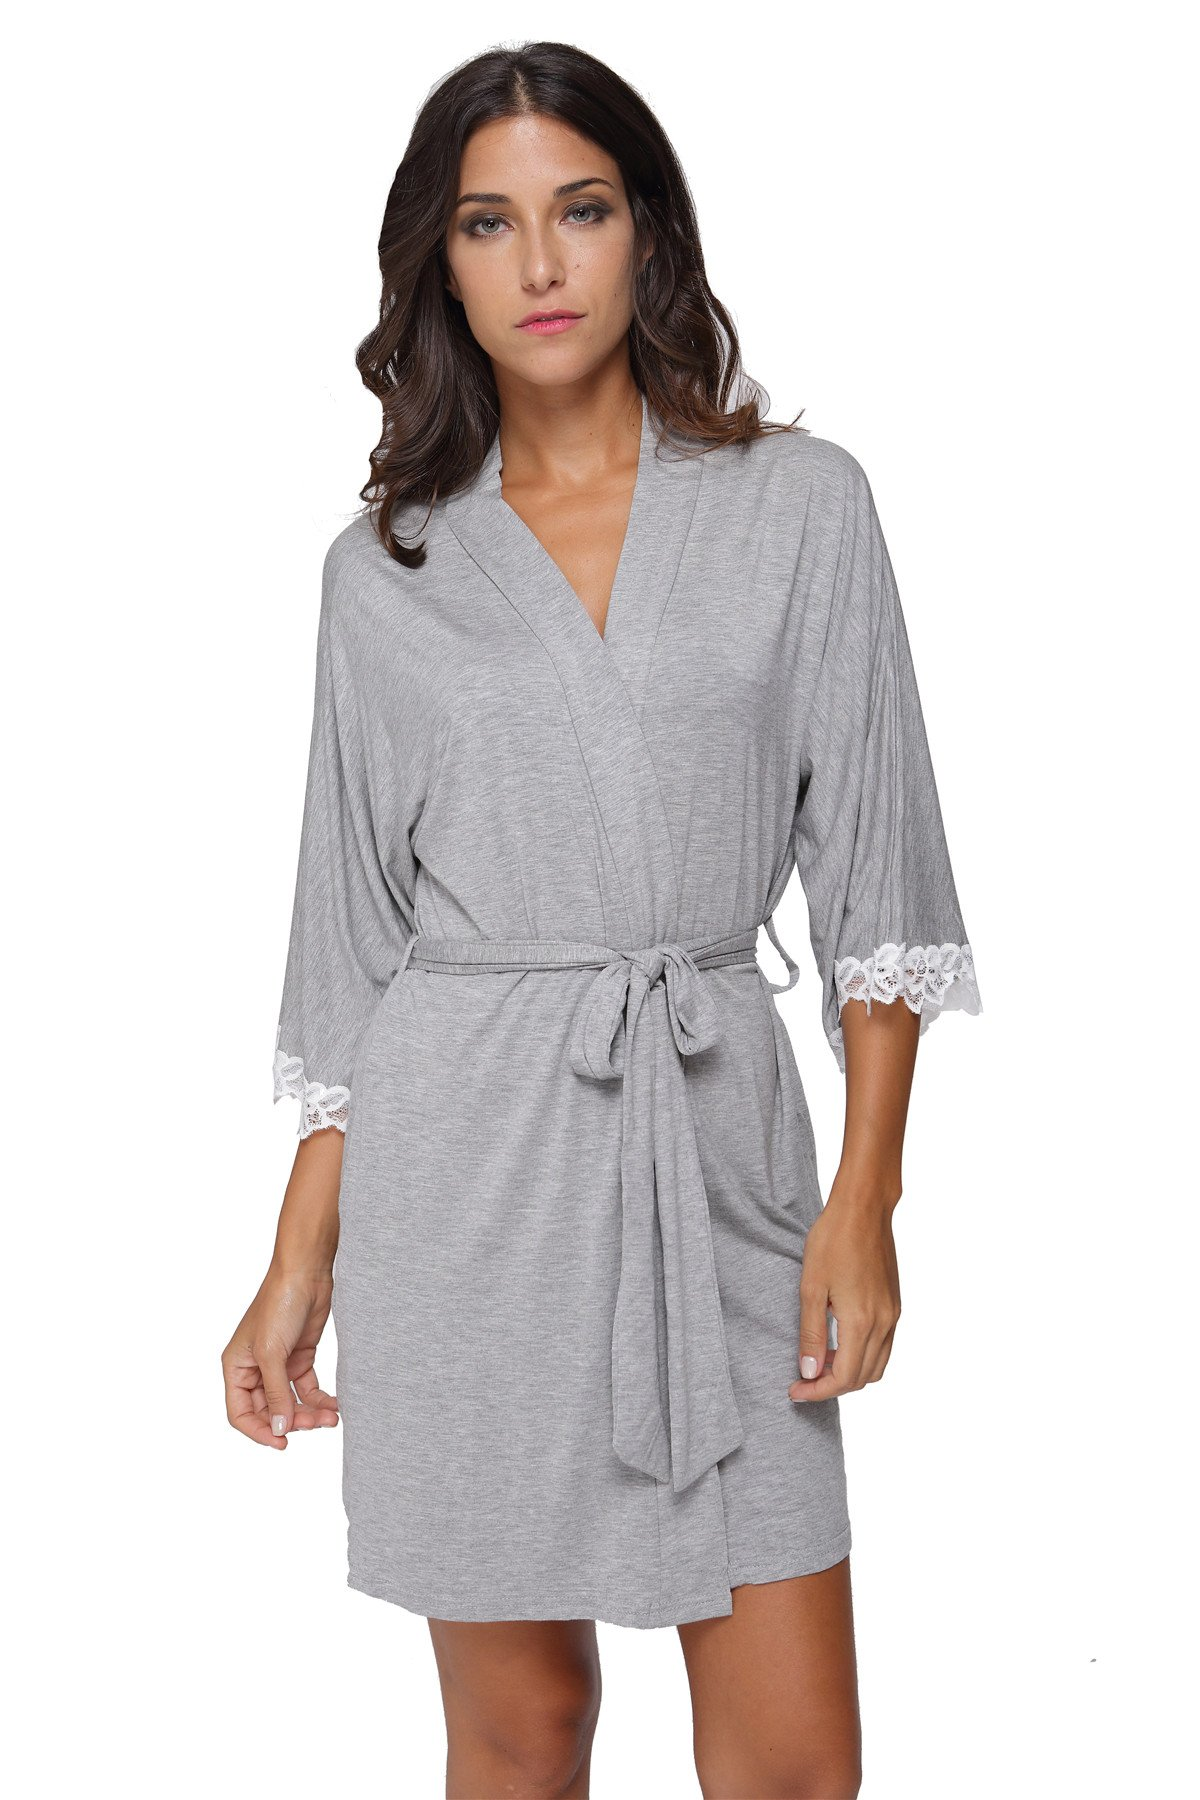 Women's Kimono Robe Soft Short Modal Cotton Bathrobe for Bride and Bridesmaid with Lace Trim